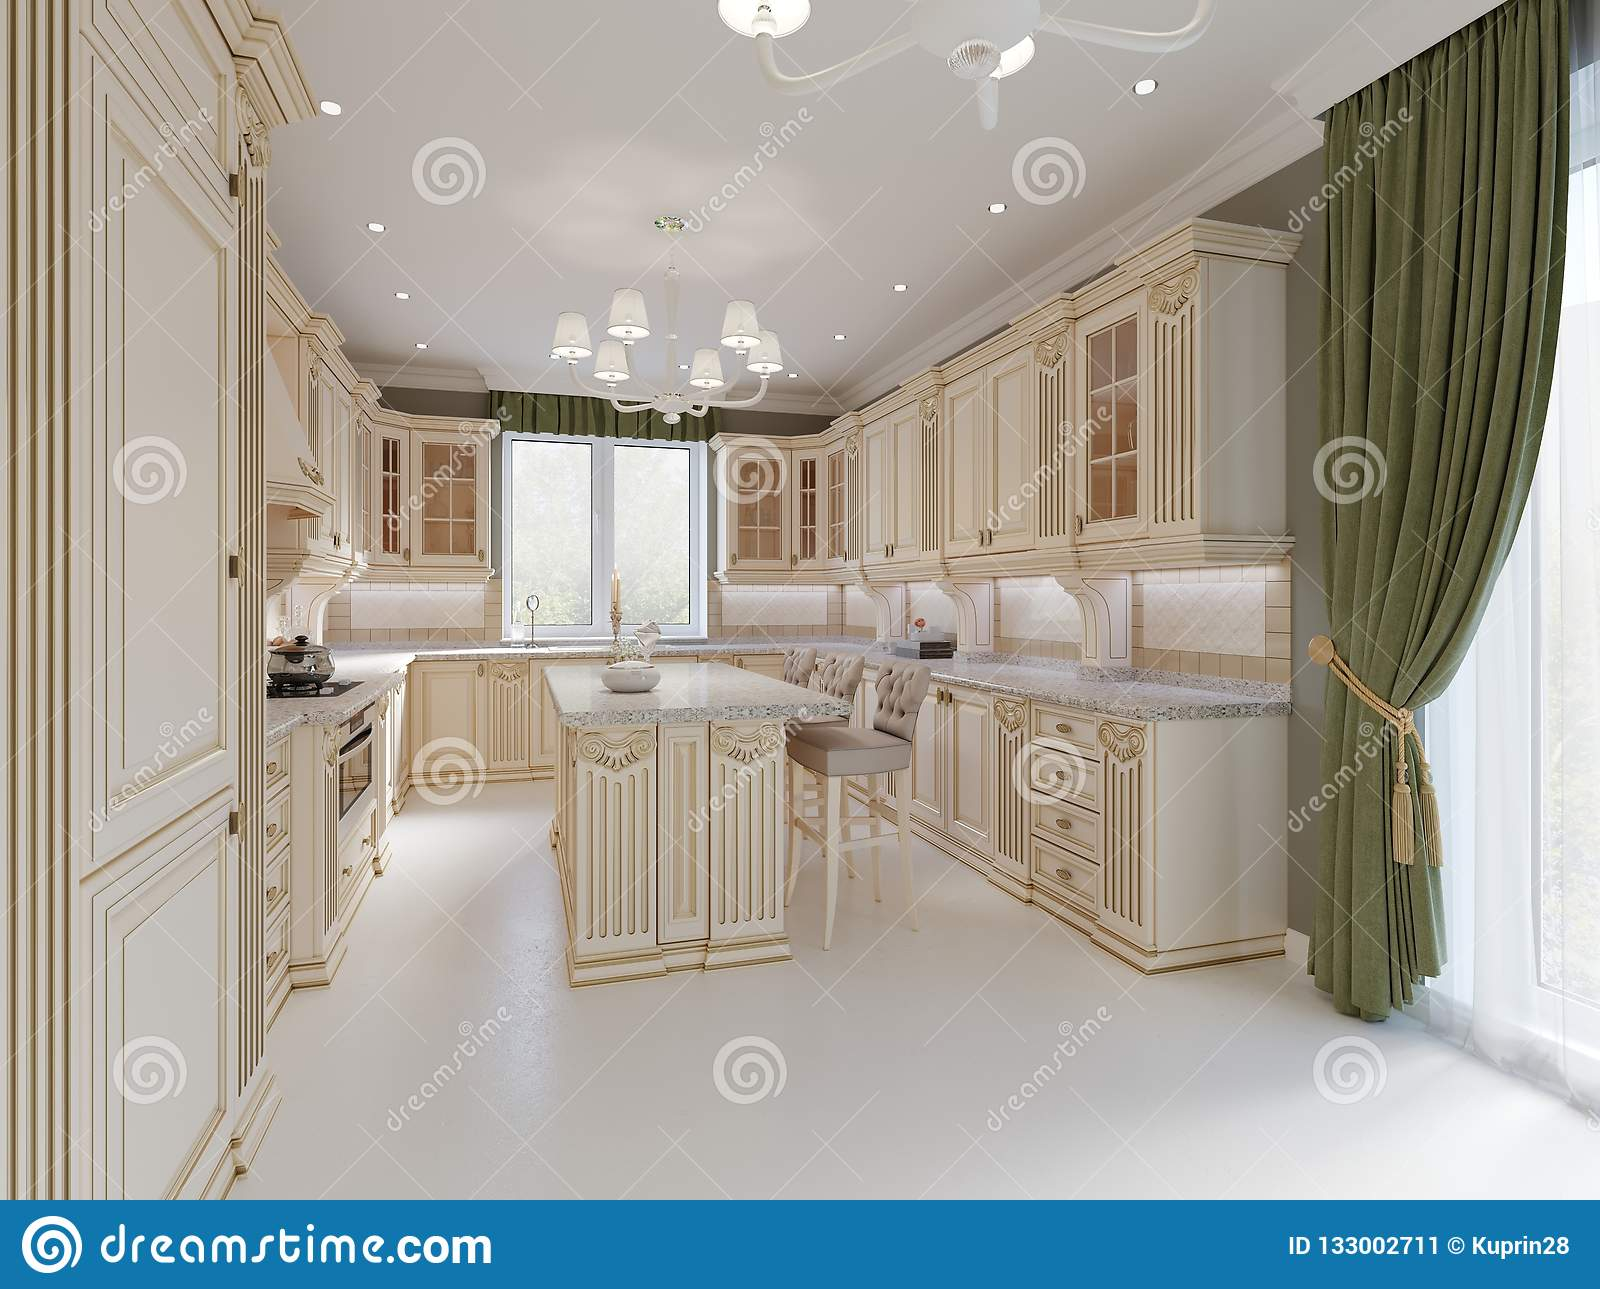 Finished project of classic kitchen with wooden details and marble floor luxury light interior design 3d rendering